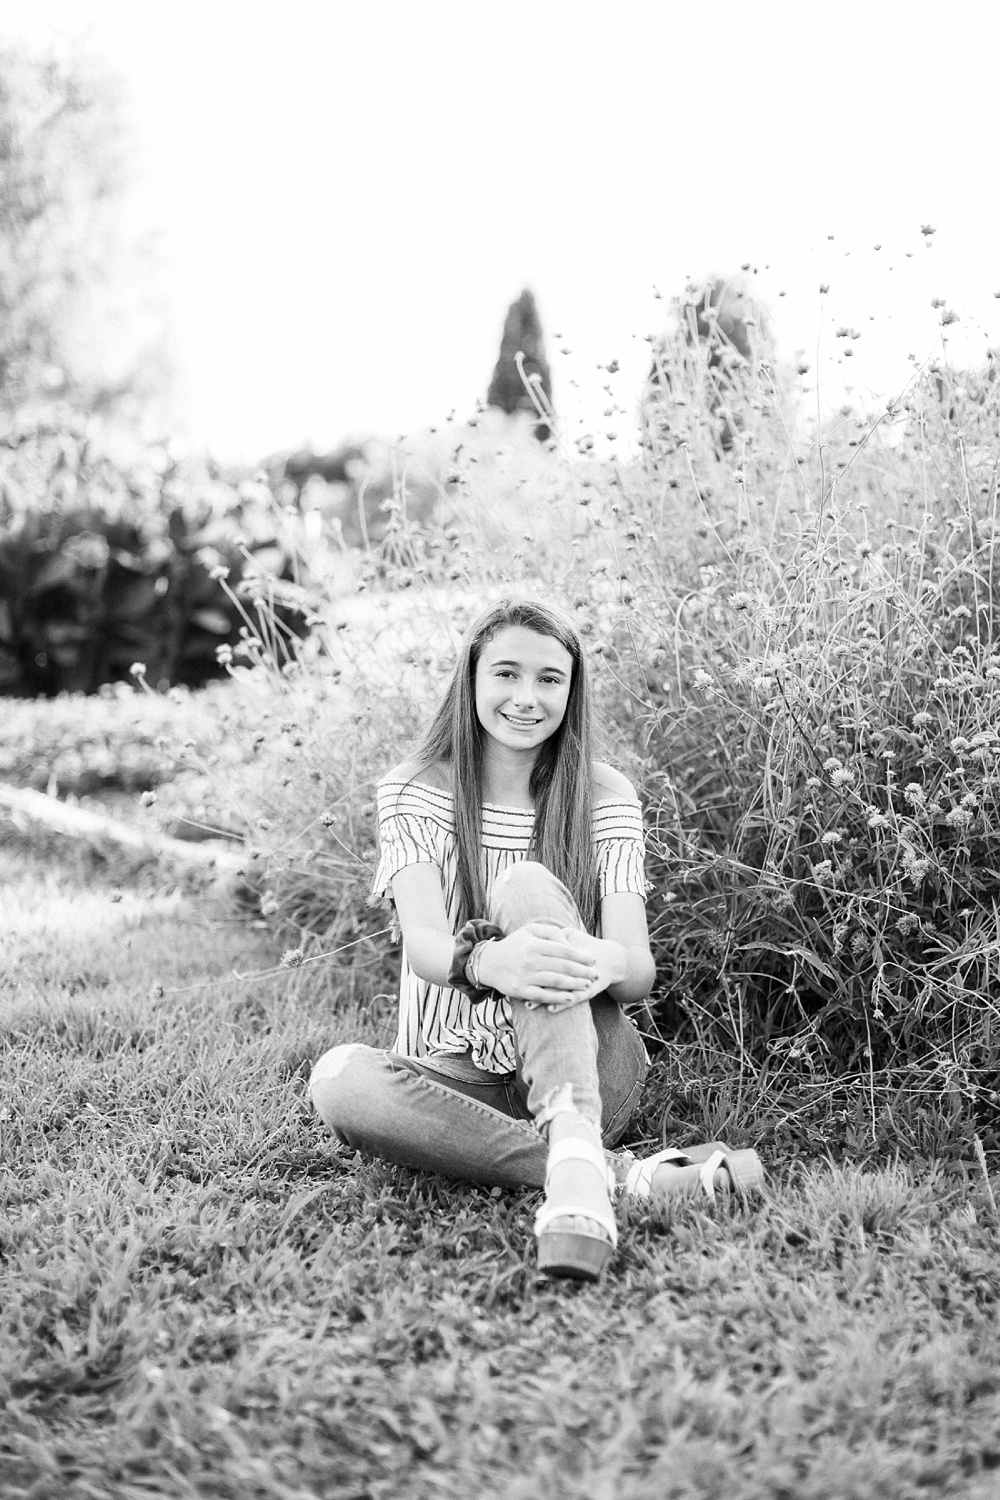 black and white senior portrait of a young woman in a garden